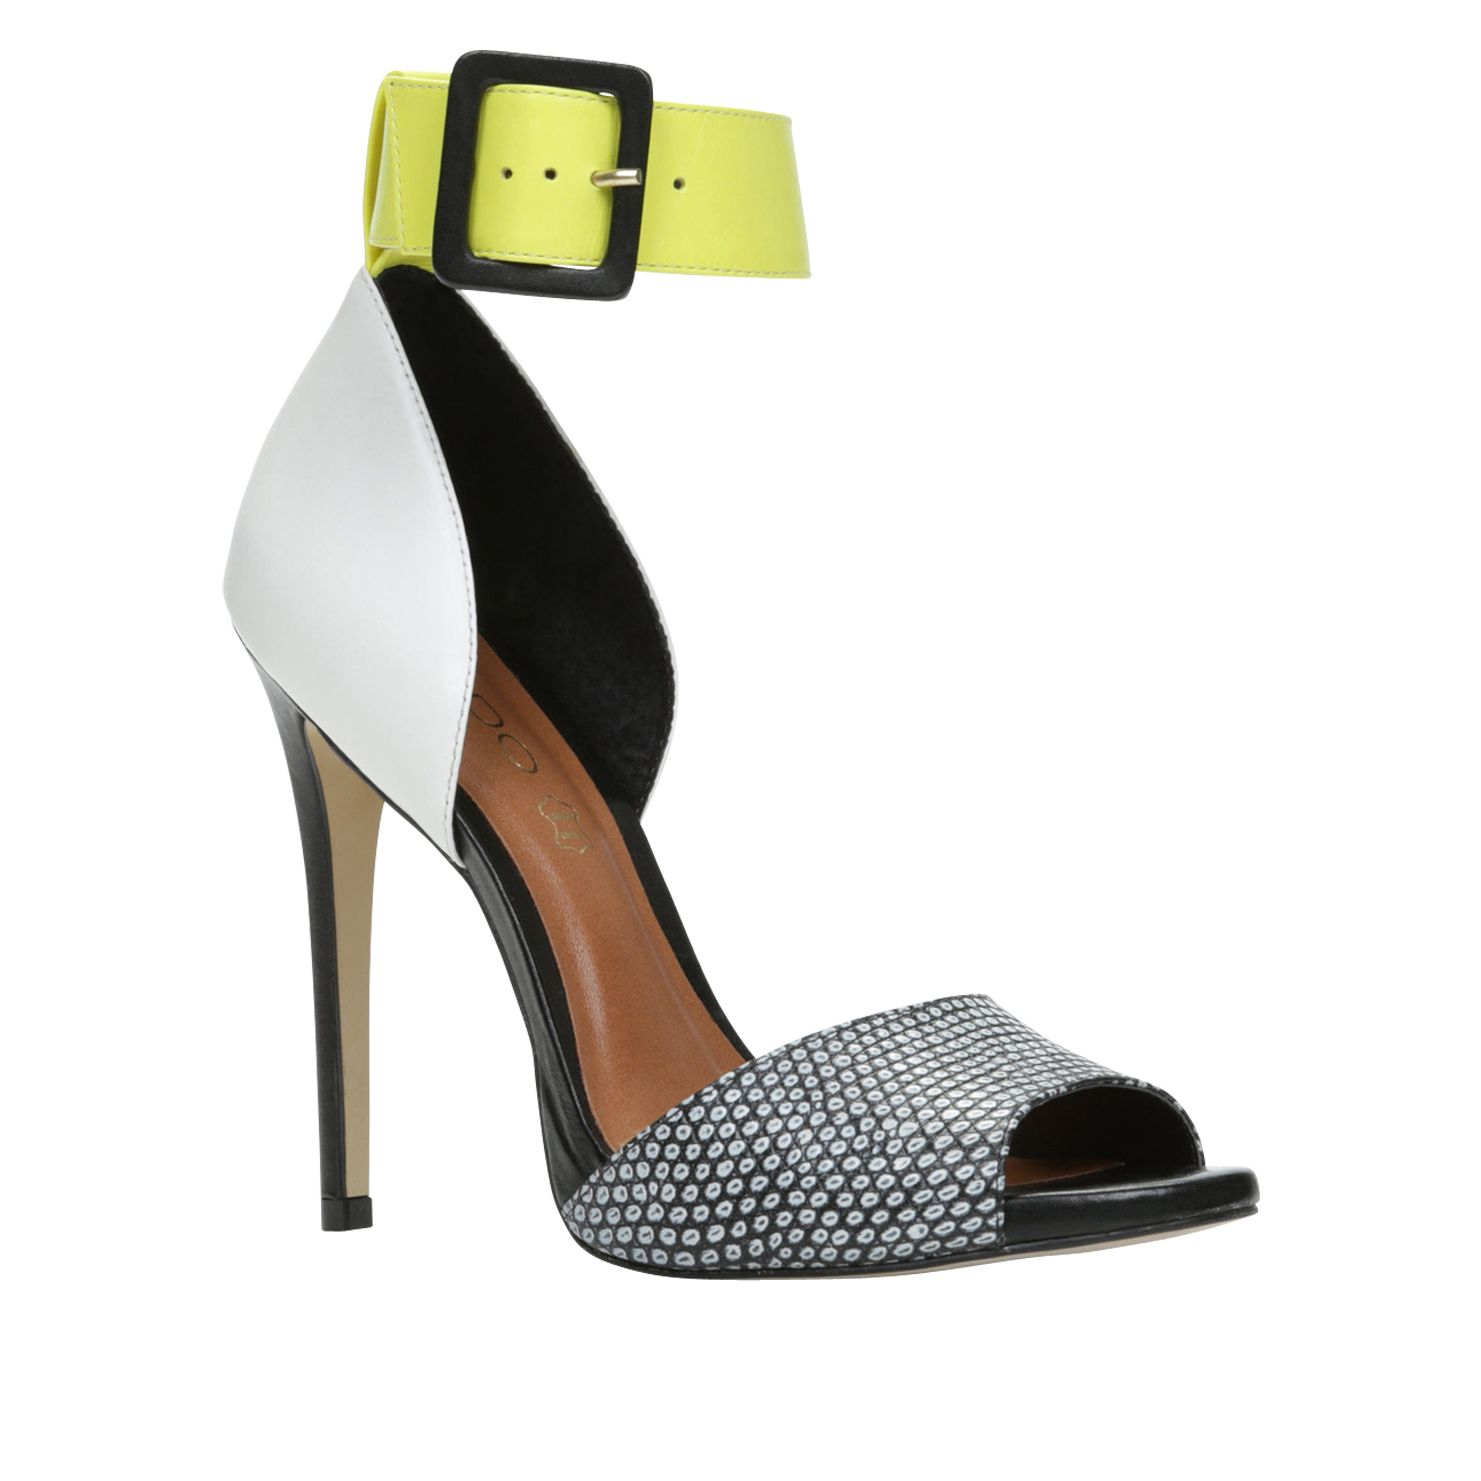 Areridda peep toe ankle strap court sandals